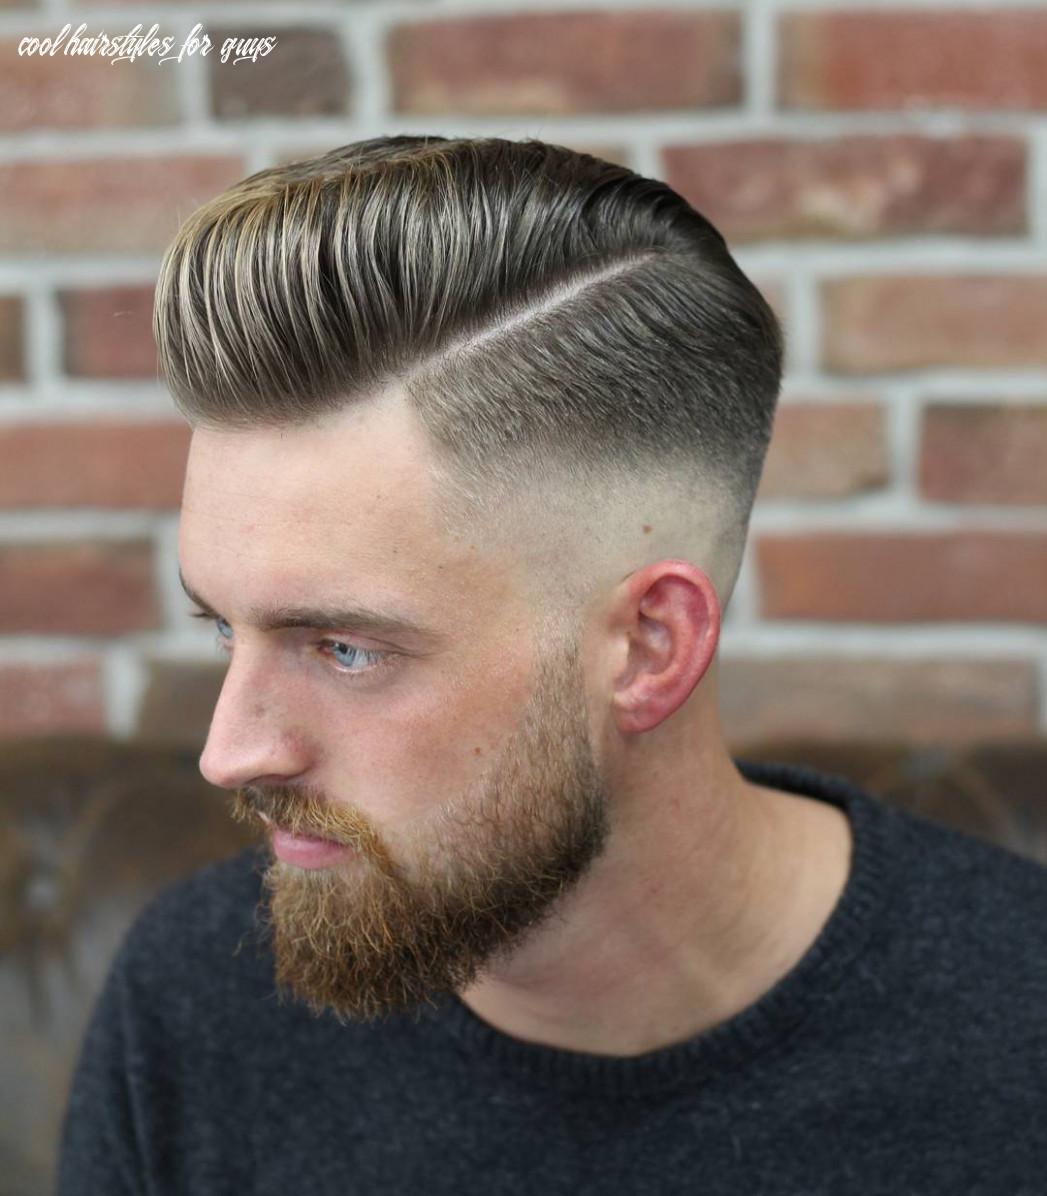 11 cool hairstyles for men (fresh styles) cool hairstyles for guys